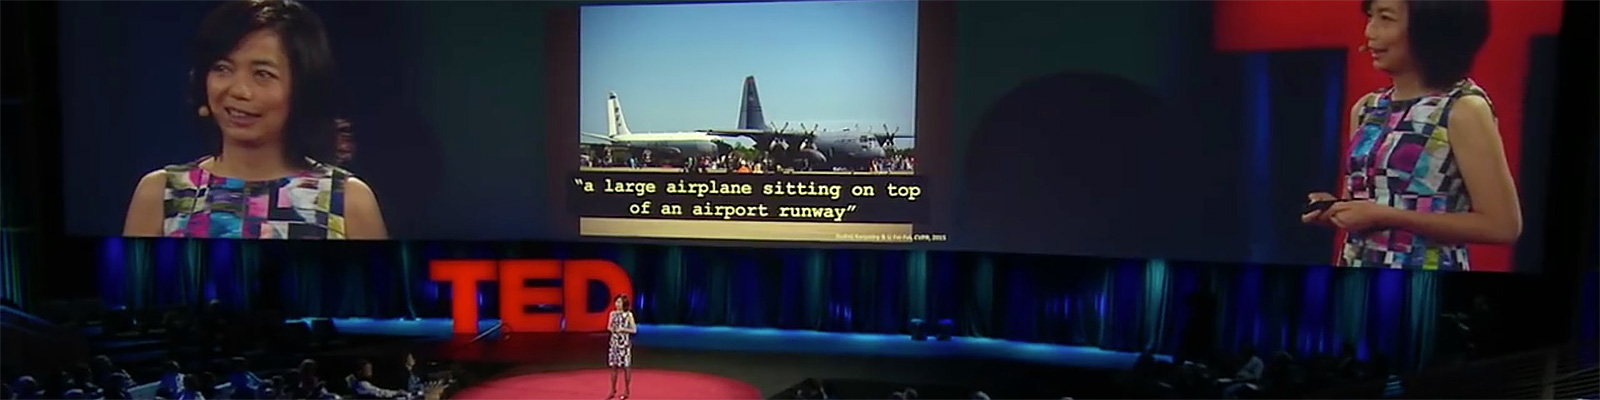 How we teach computers to understand pictures | Fei Fei Li(TED)